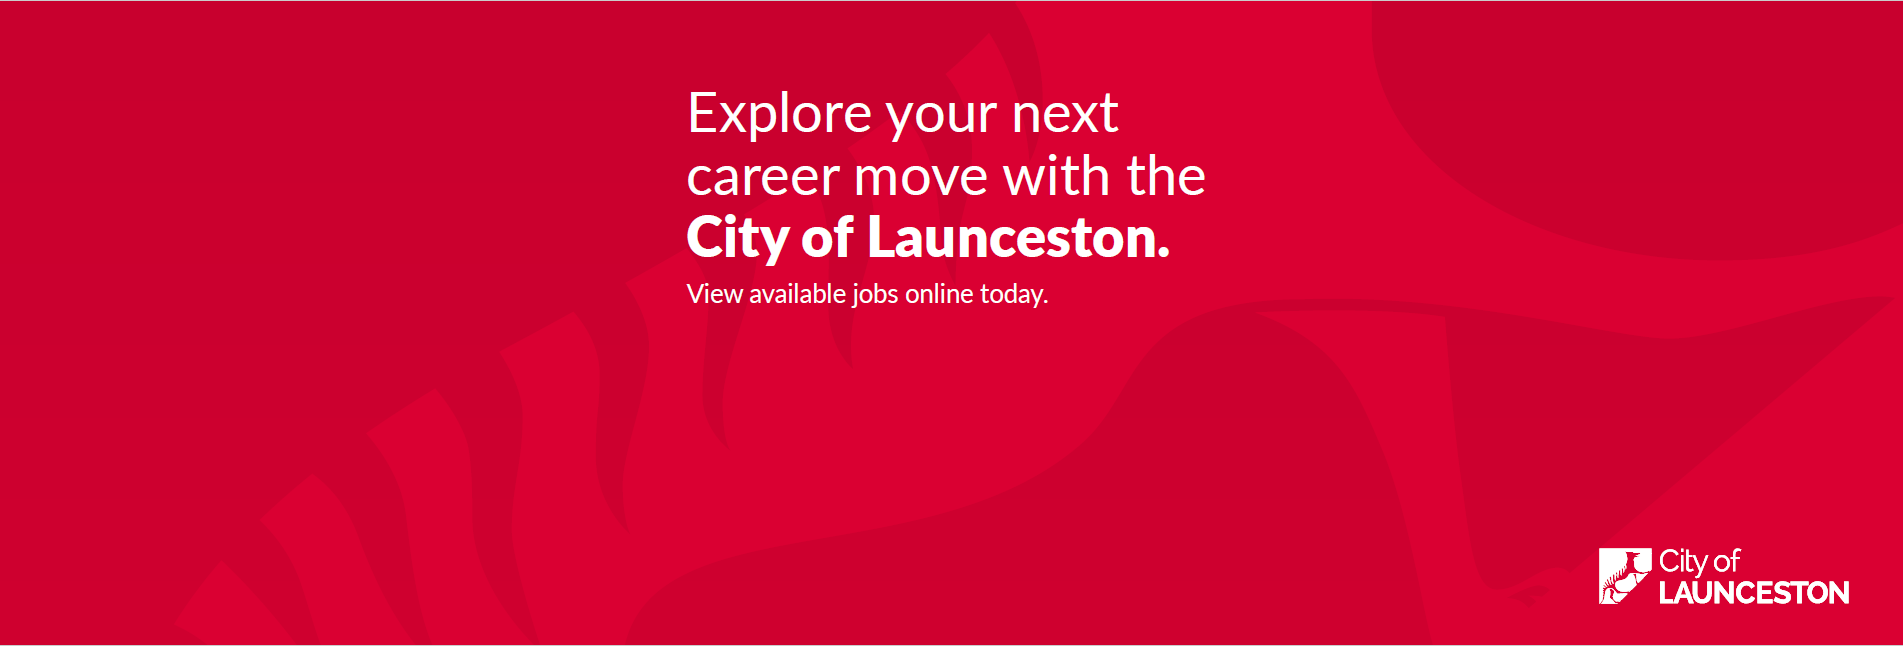 Careers with the City of Launceston.PNG